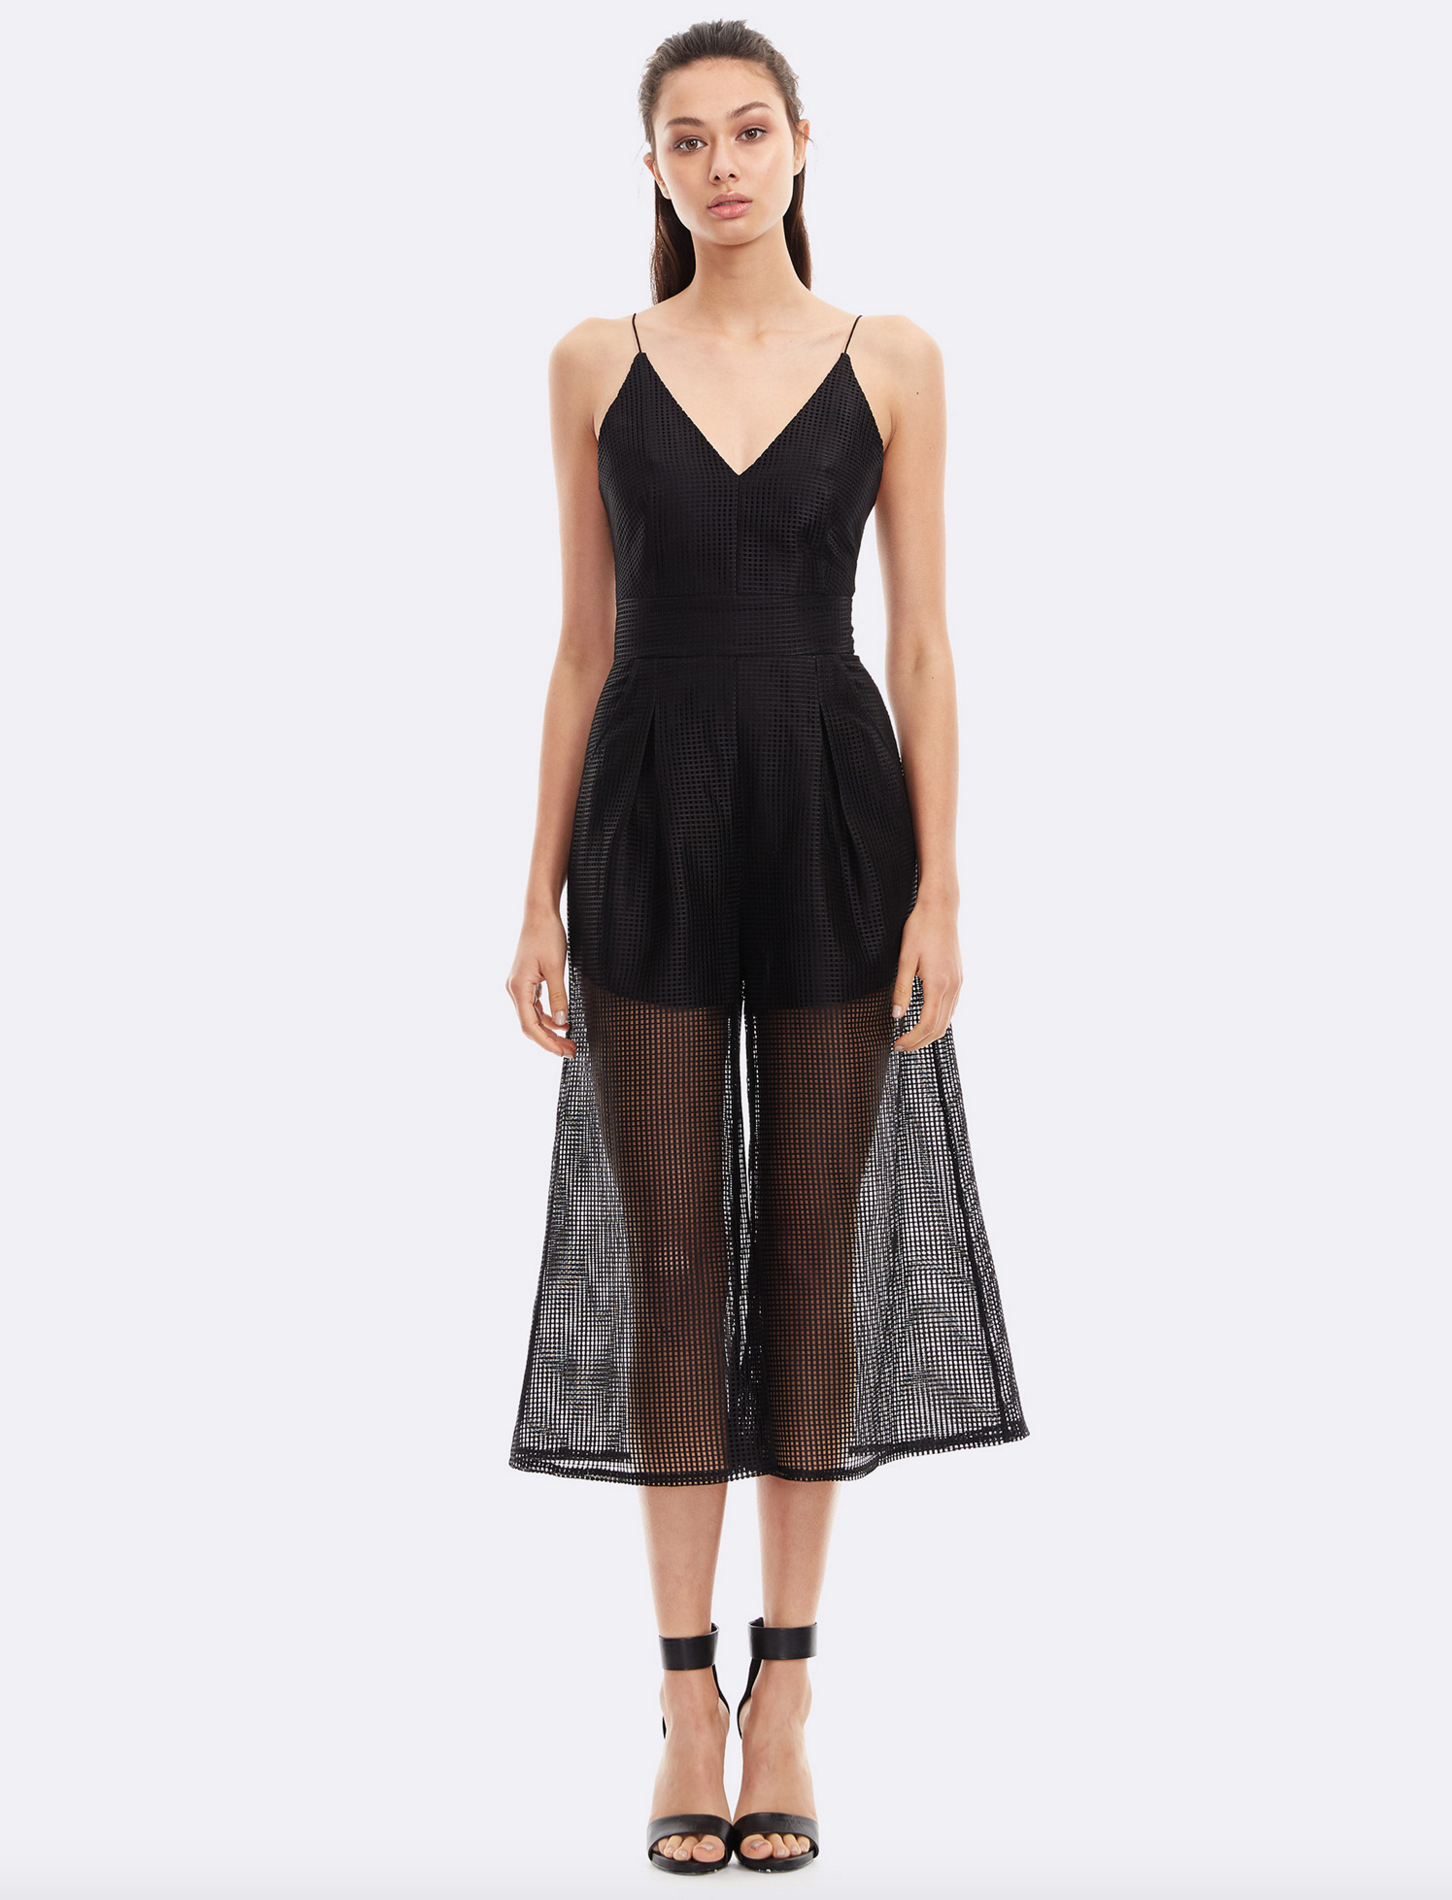 Cooper st come with me jumpsuit $179.95